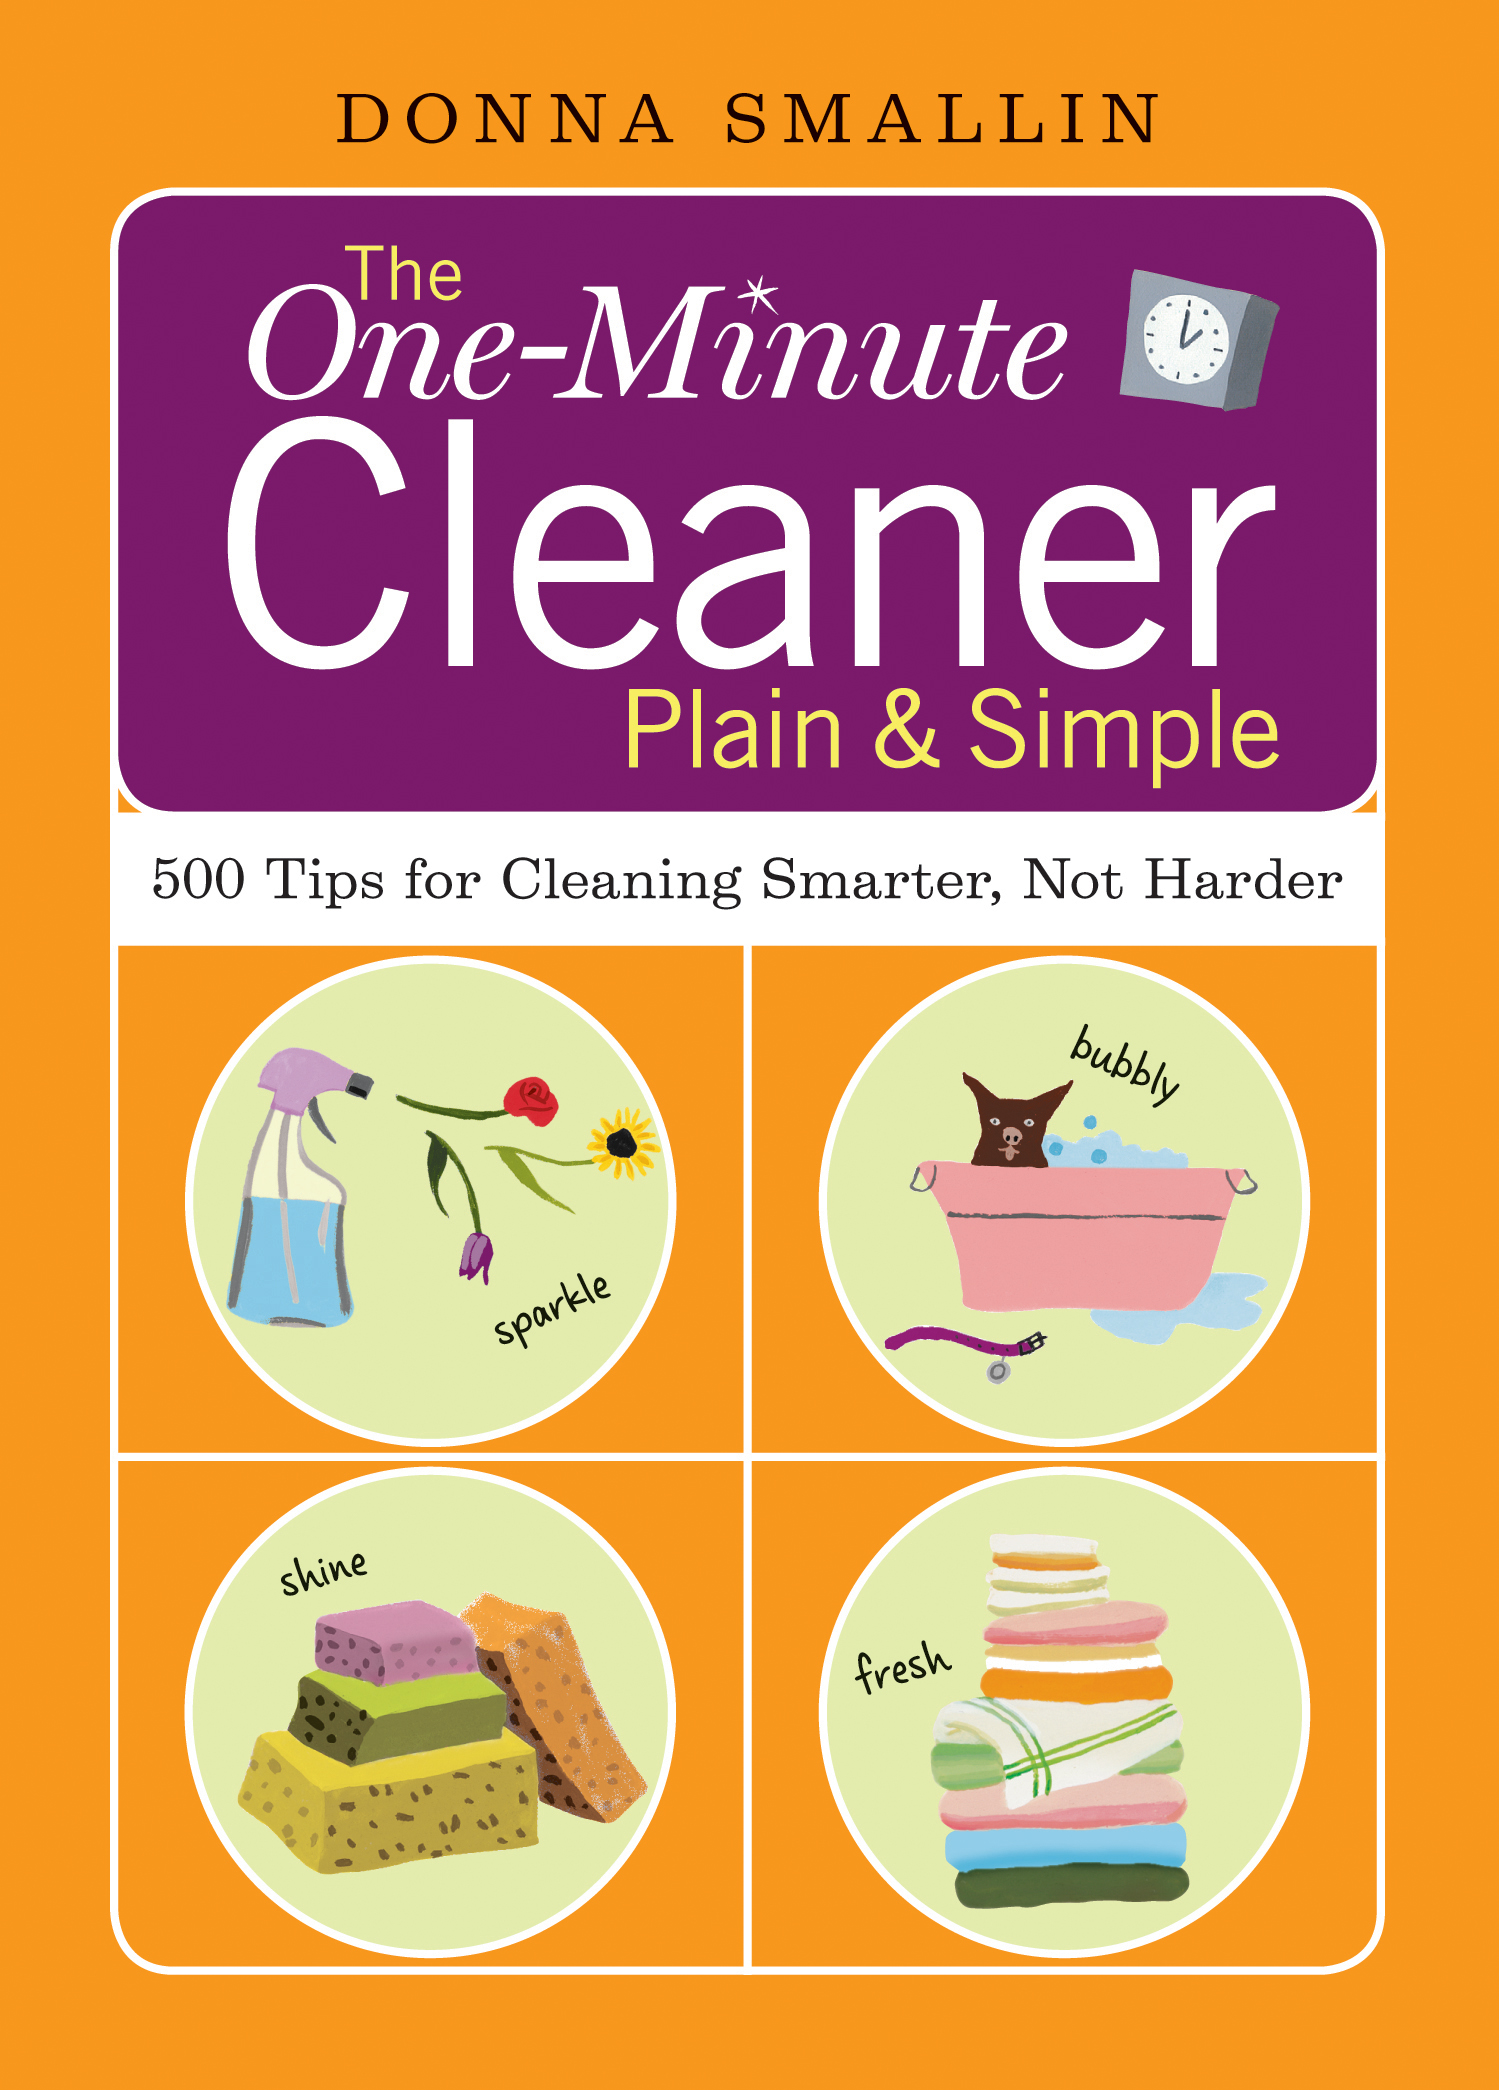 The One-Minute Cleaner Plain & Simple 500 Tips for Cleaning Smarter, Not Harder - Donna Smallin